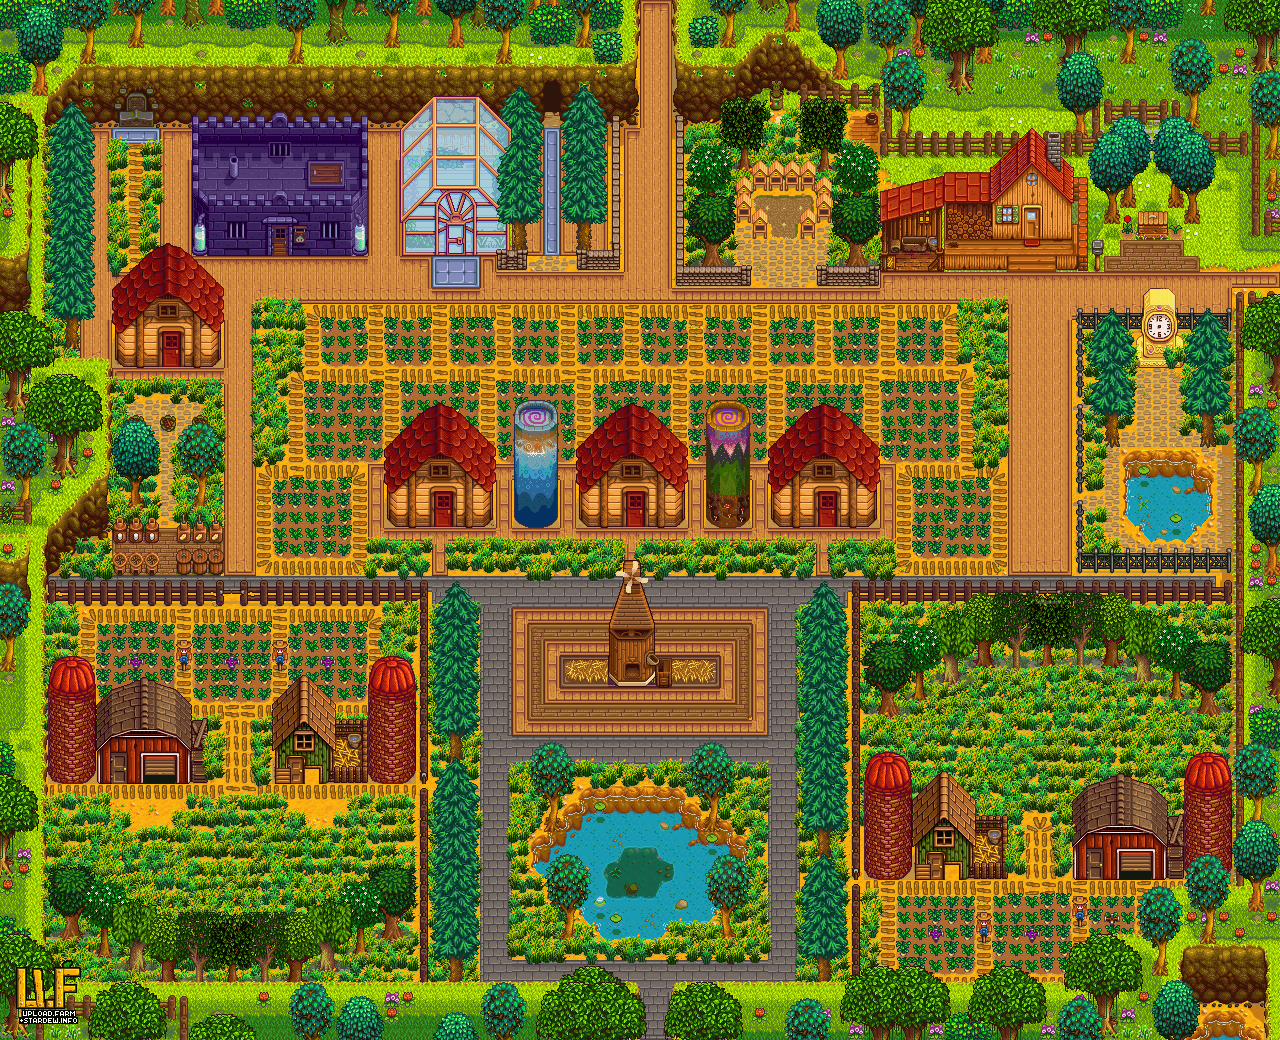 Been working on a new mock layout for my farm  How do you